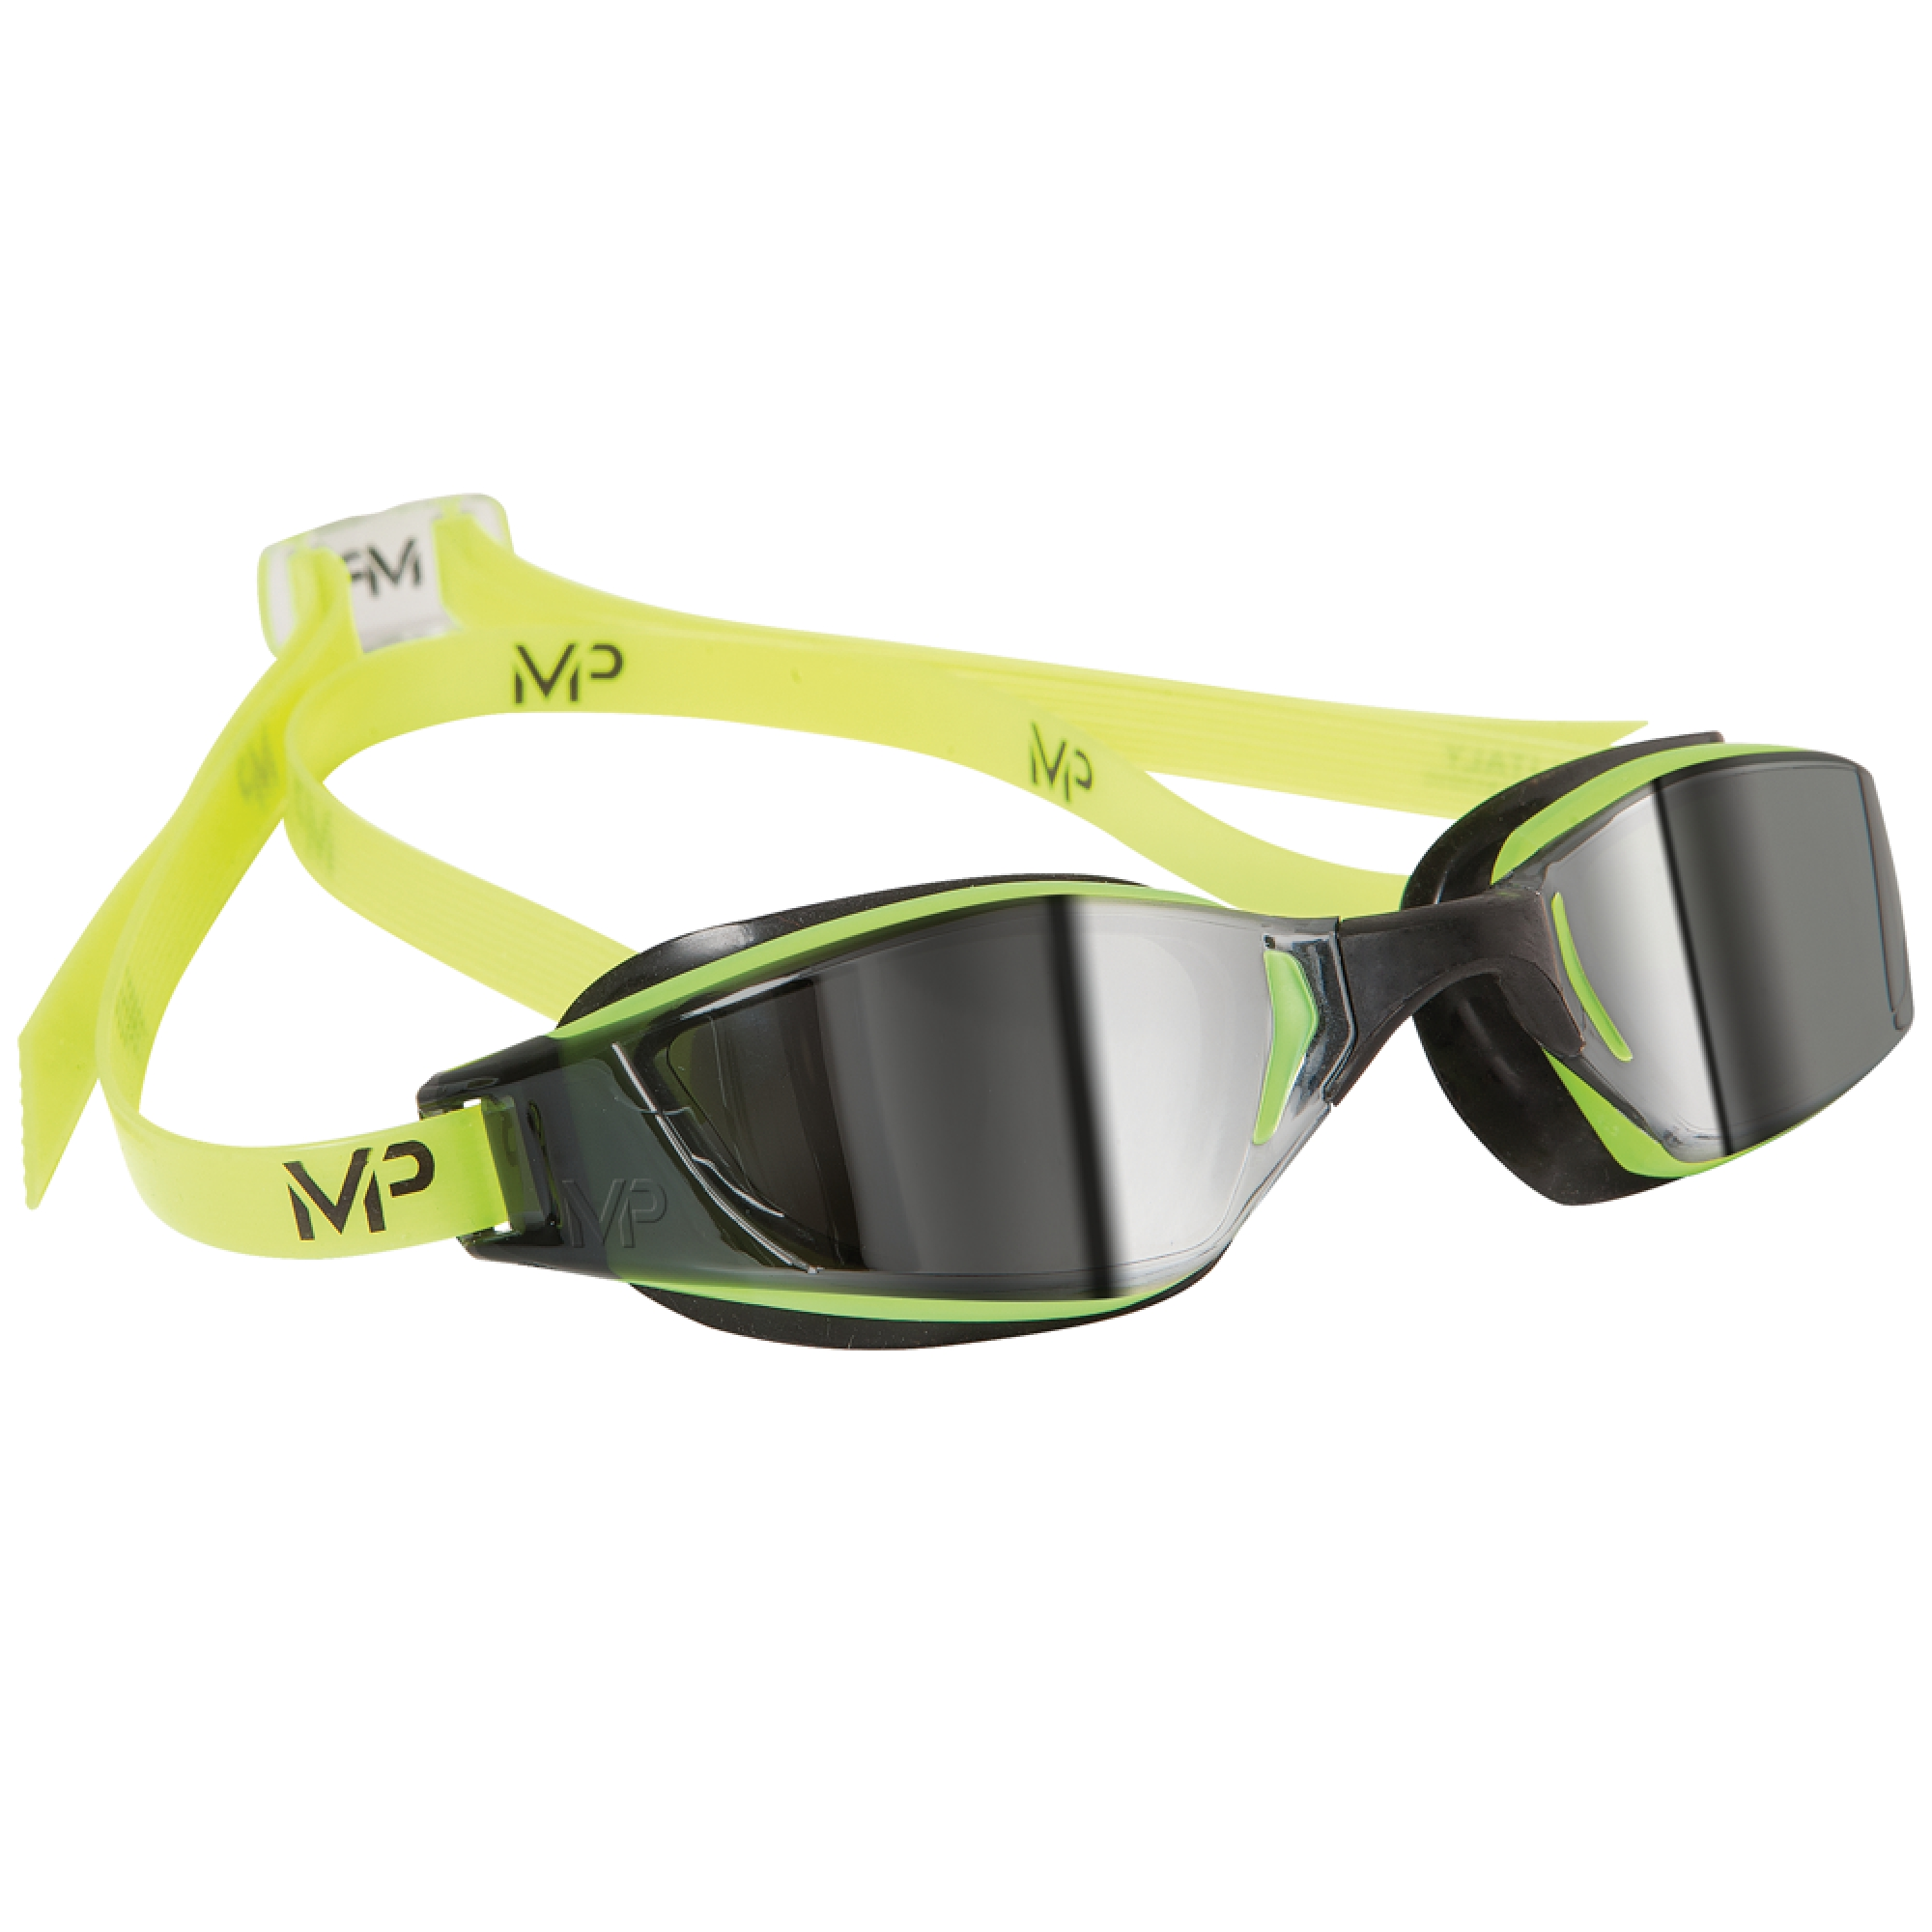 Michael Phelps Xceed Mirrored Goggles by Aqua Sphere